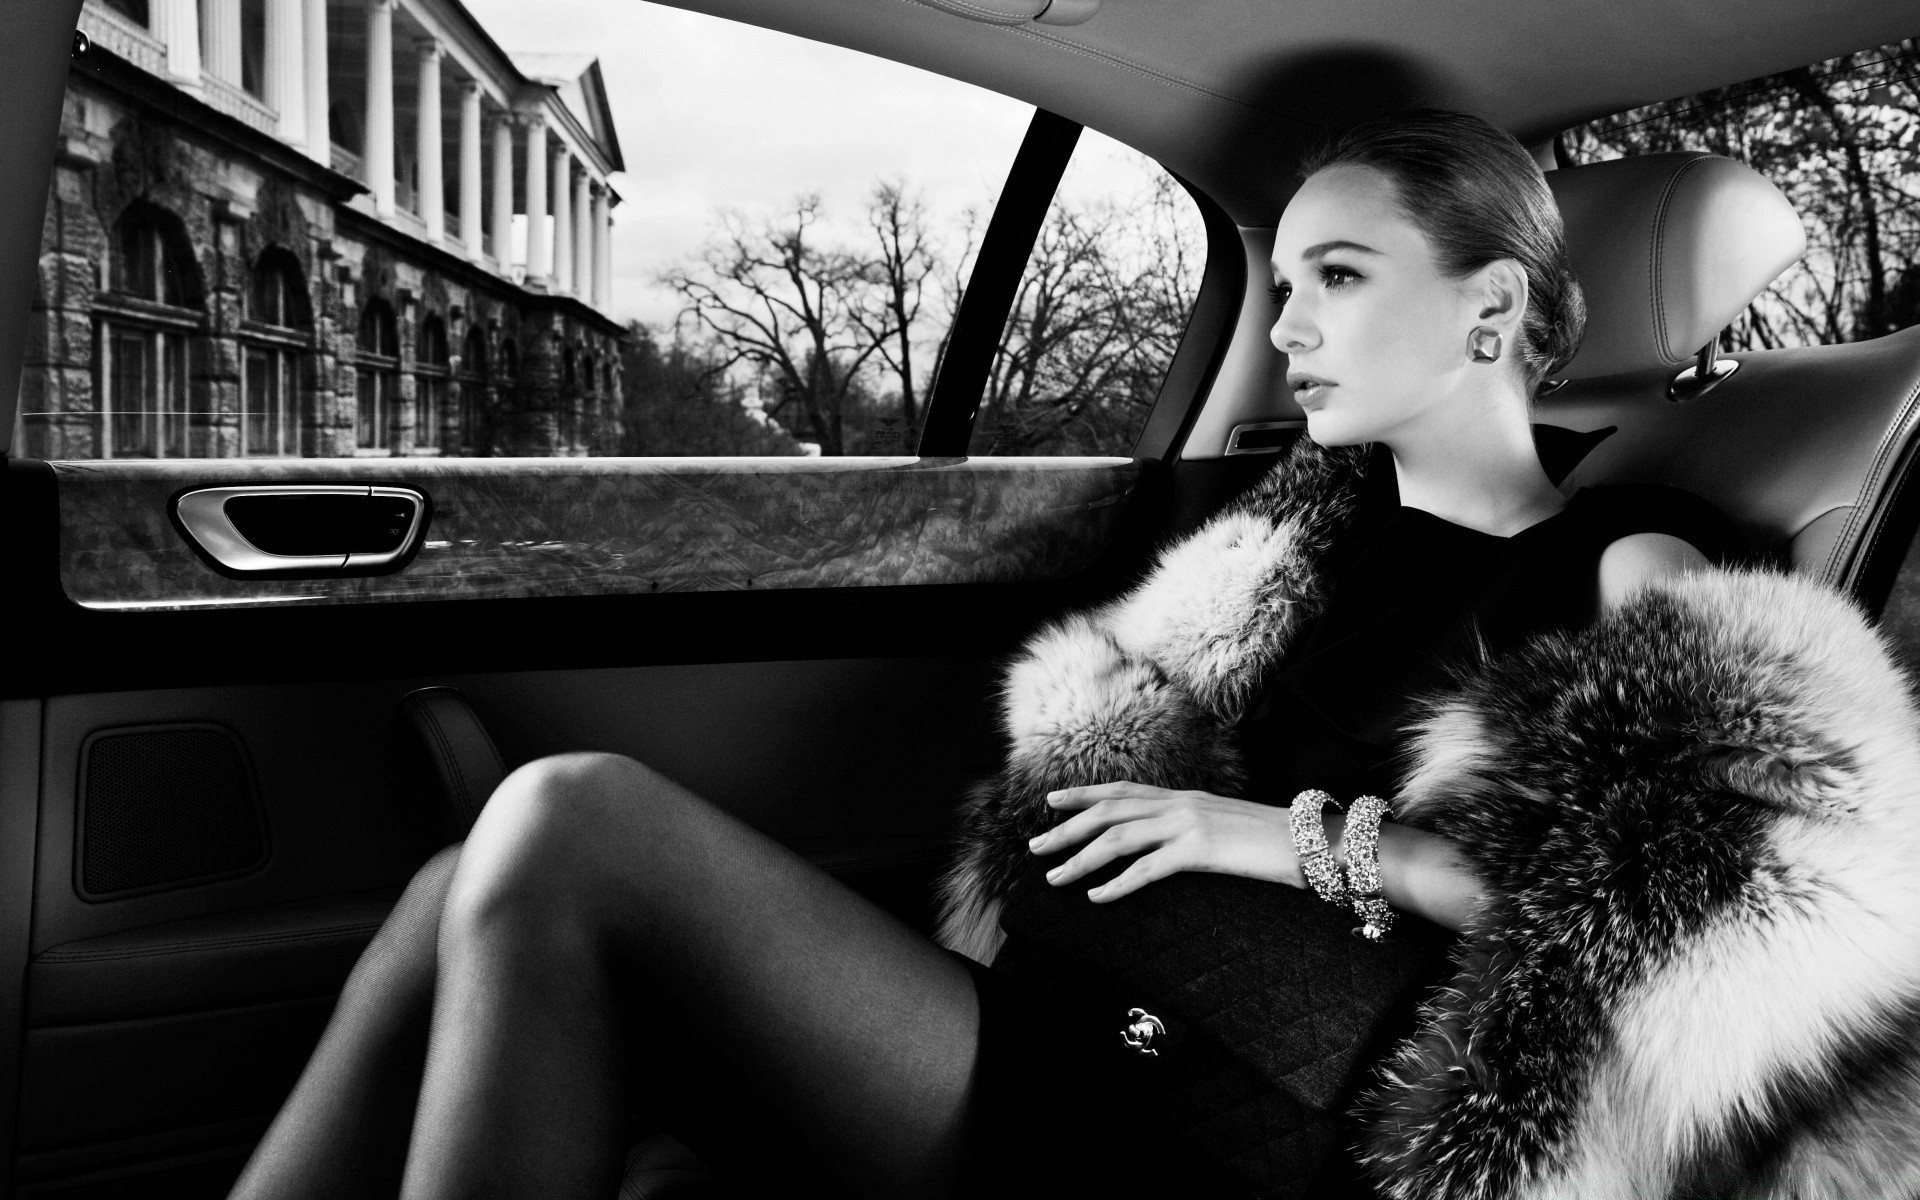 black and white street car woman portrait monochrome adult girl one outdoors fashion vehicle travel city model urban transportation system sexy